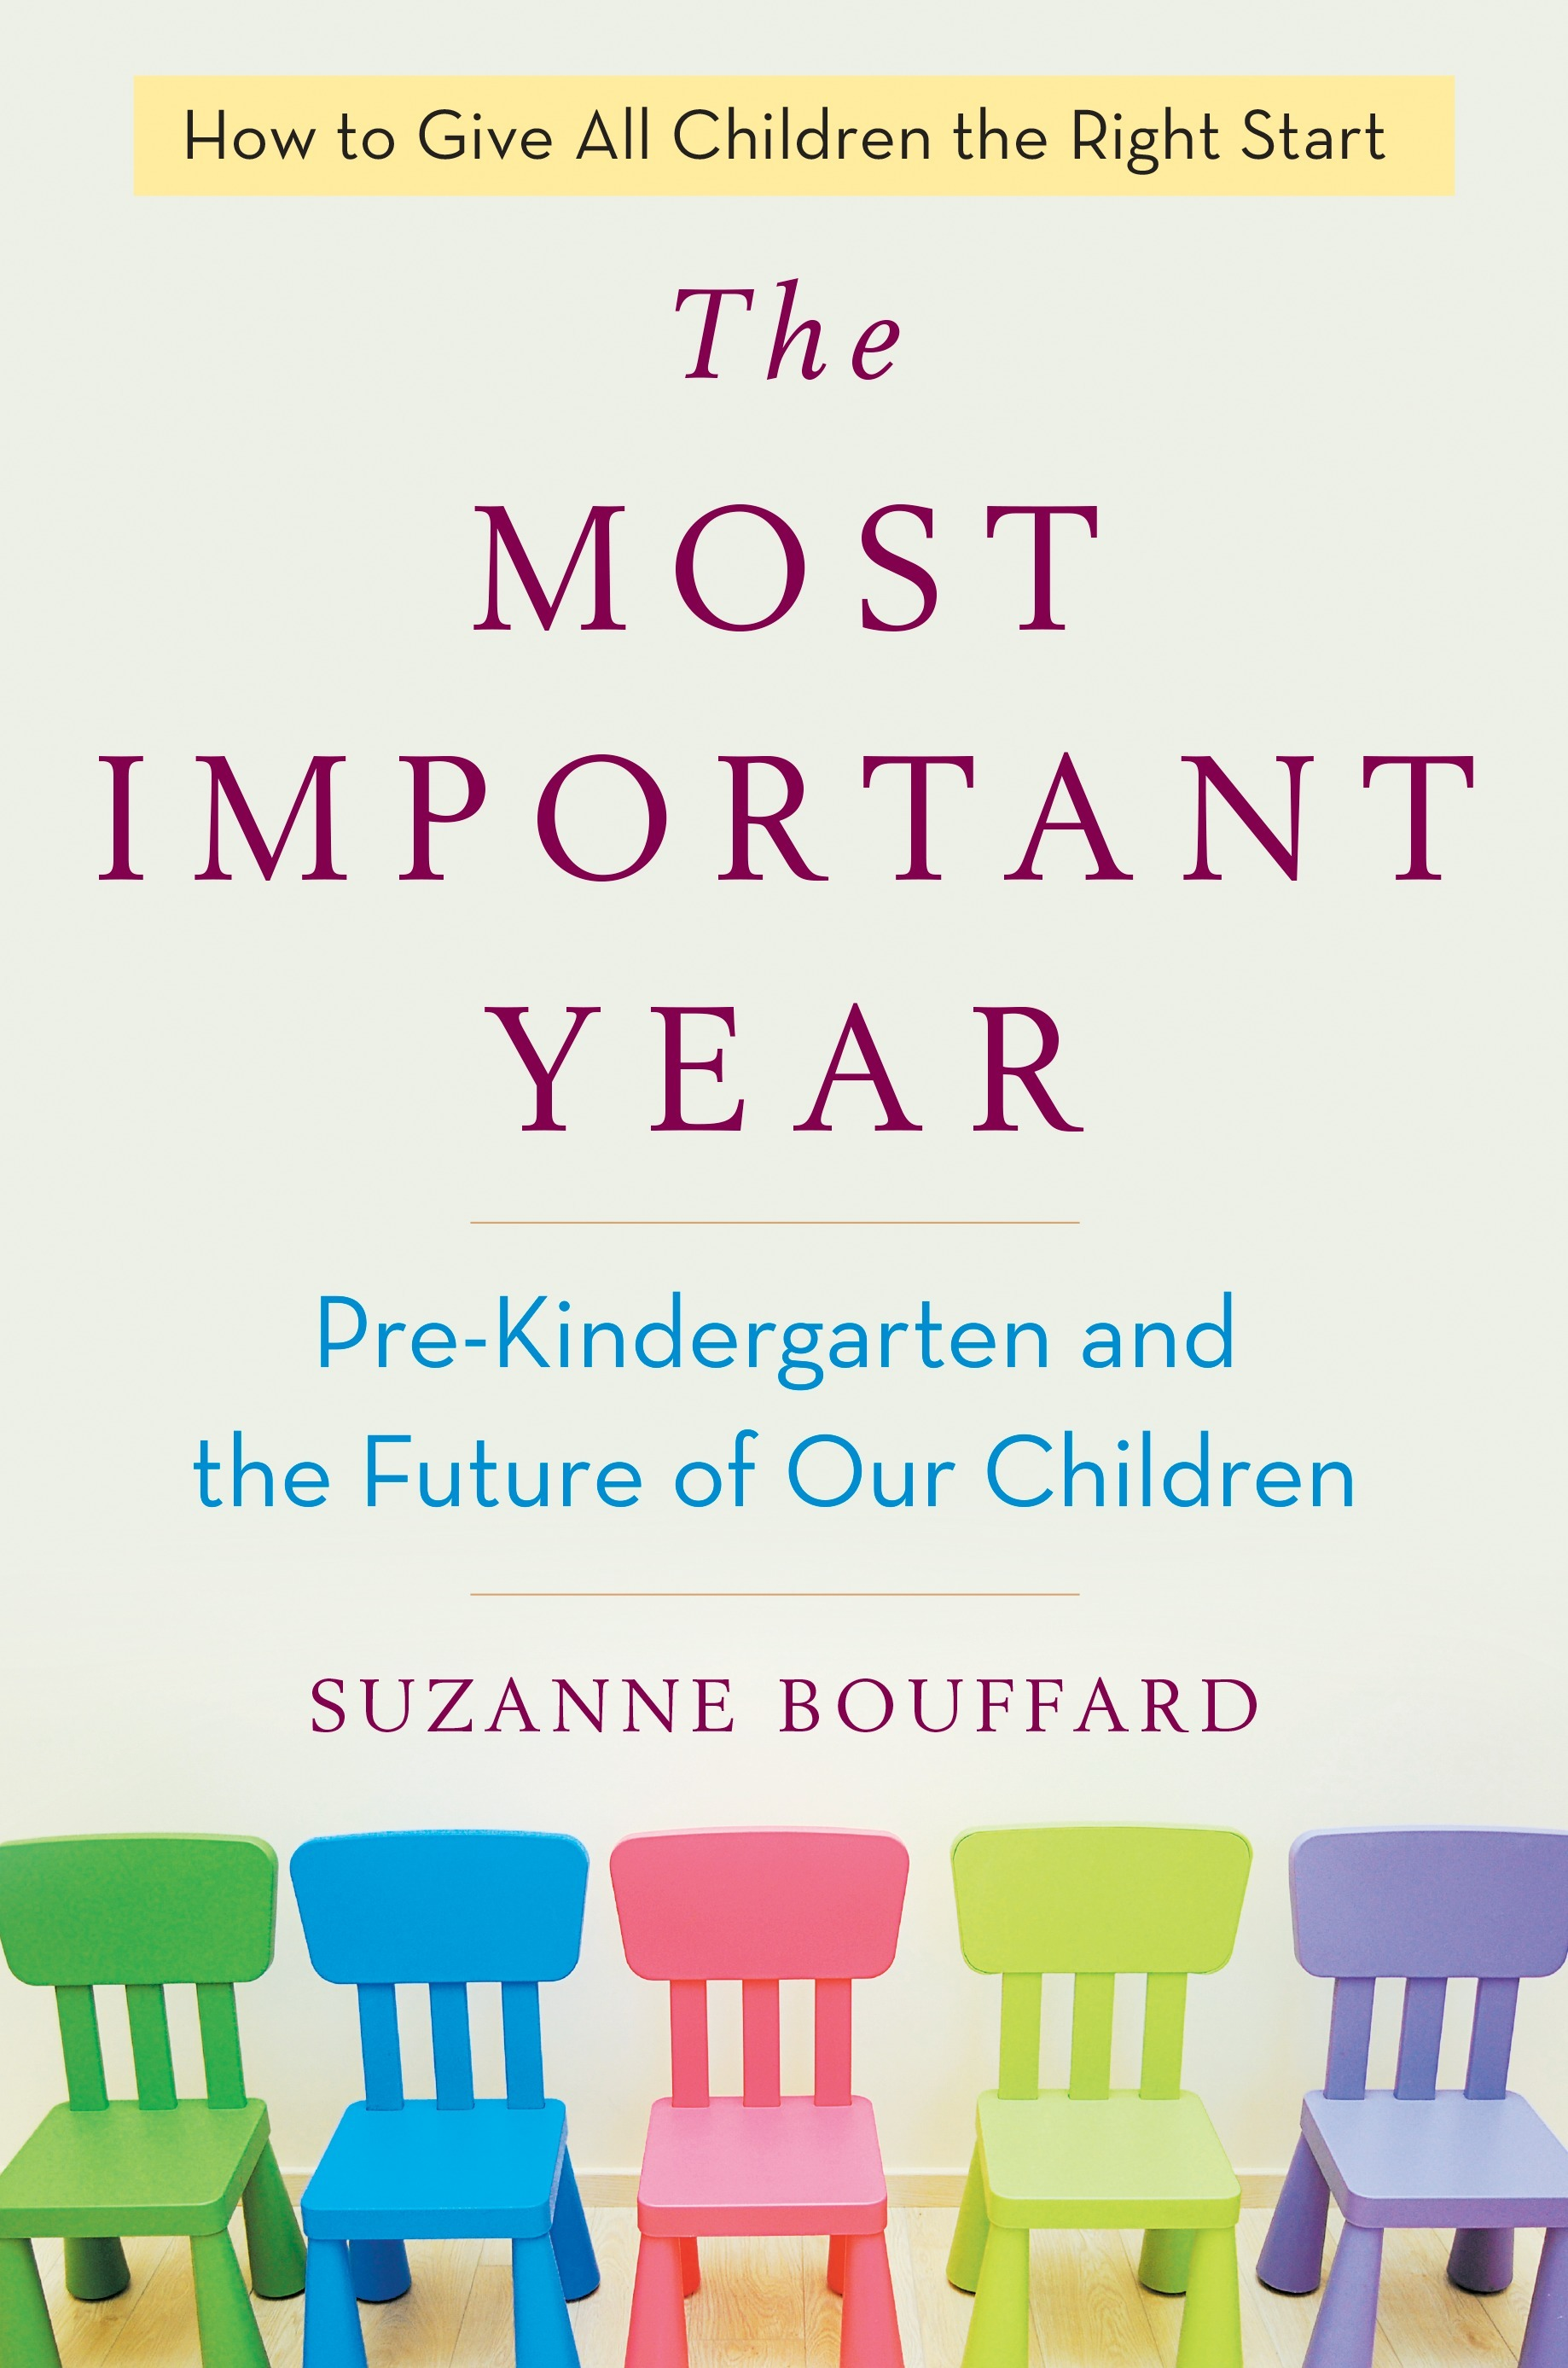 The Most Important Year Pre-Kindergarten and the Future of Our Children